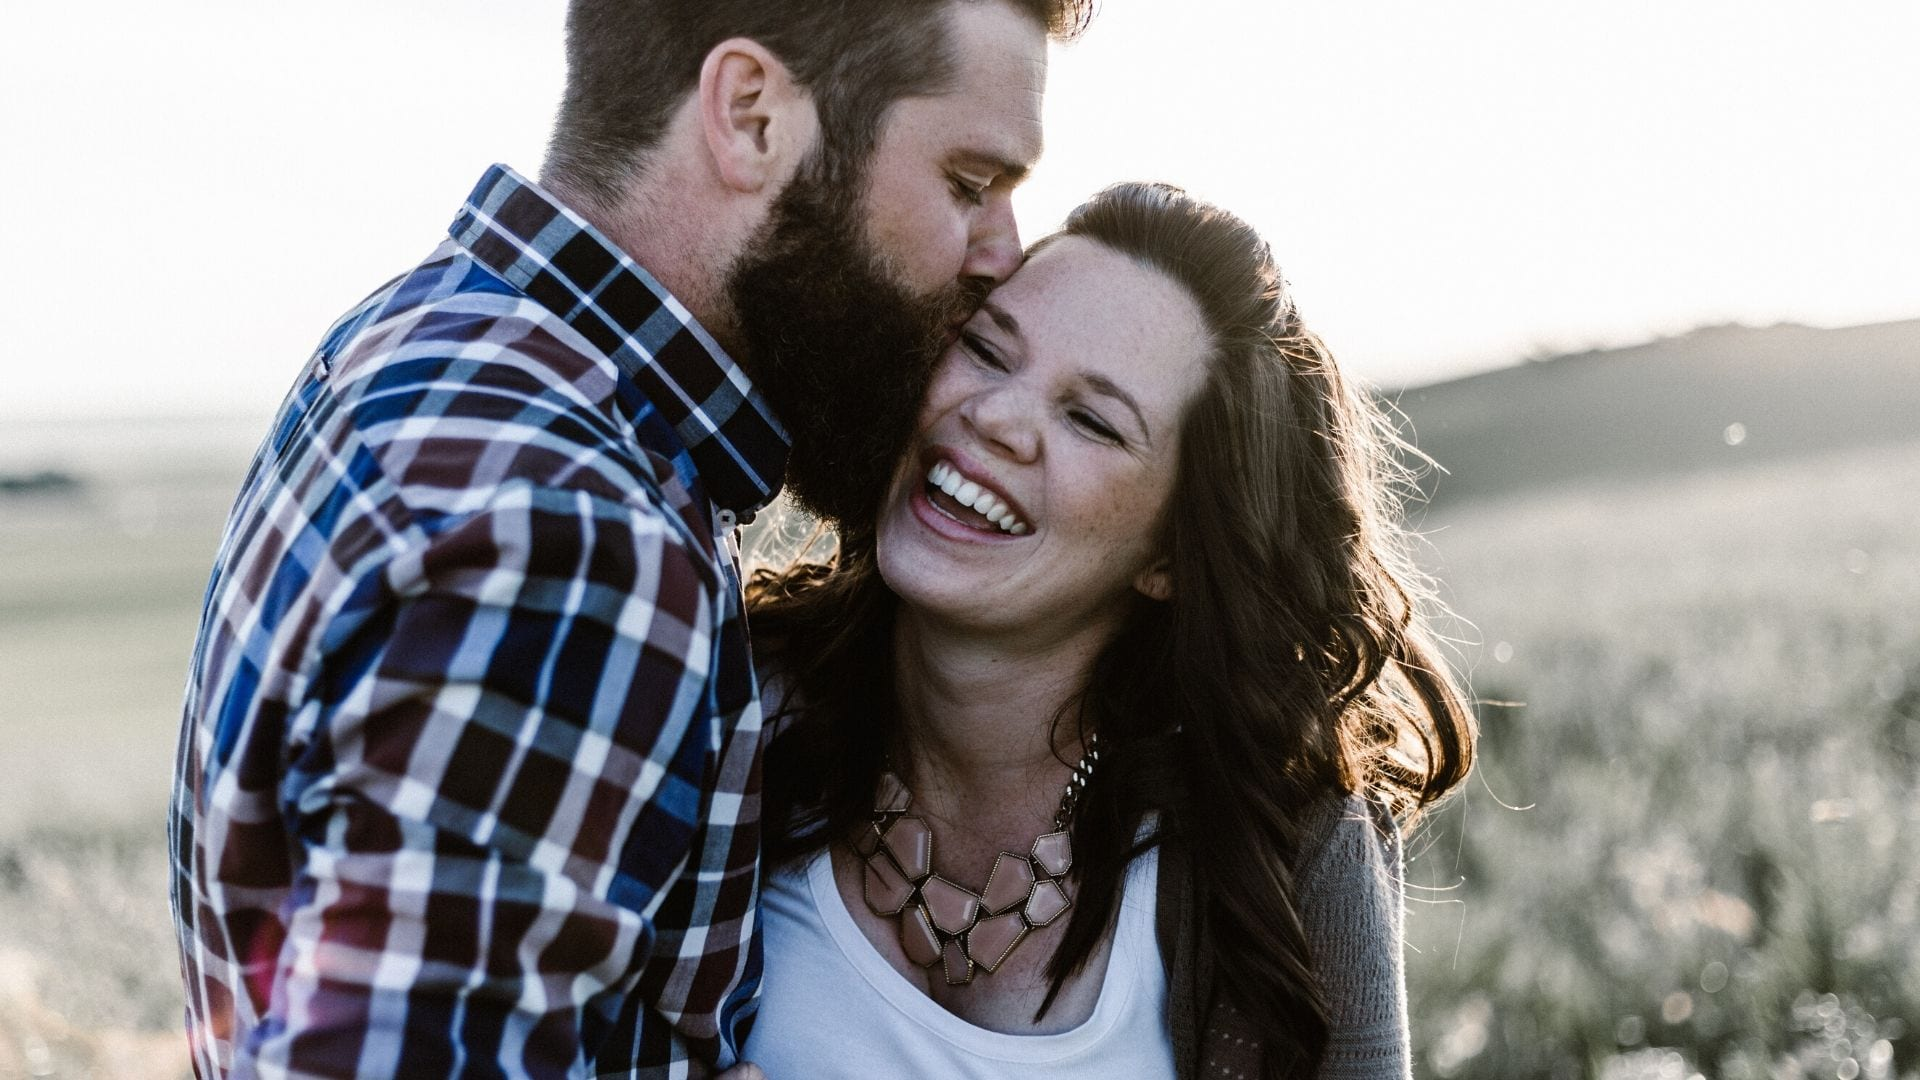 Husband holding wife close and kissing her forehead.